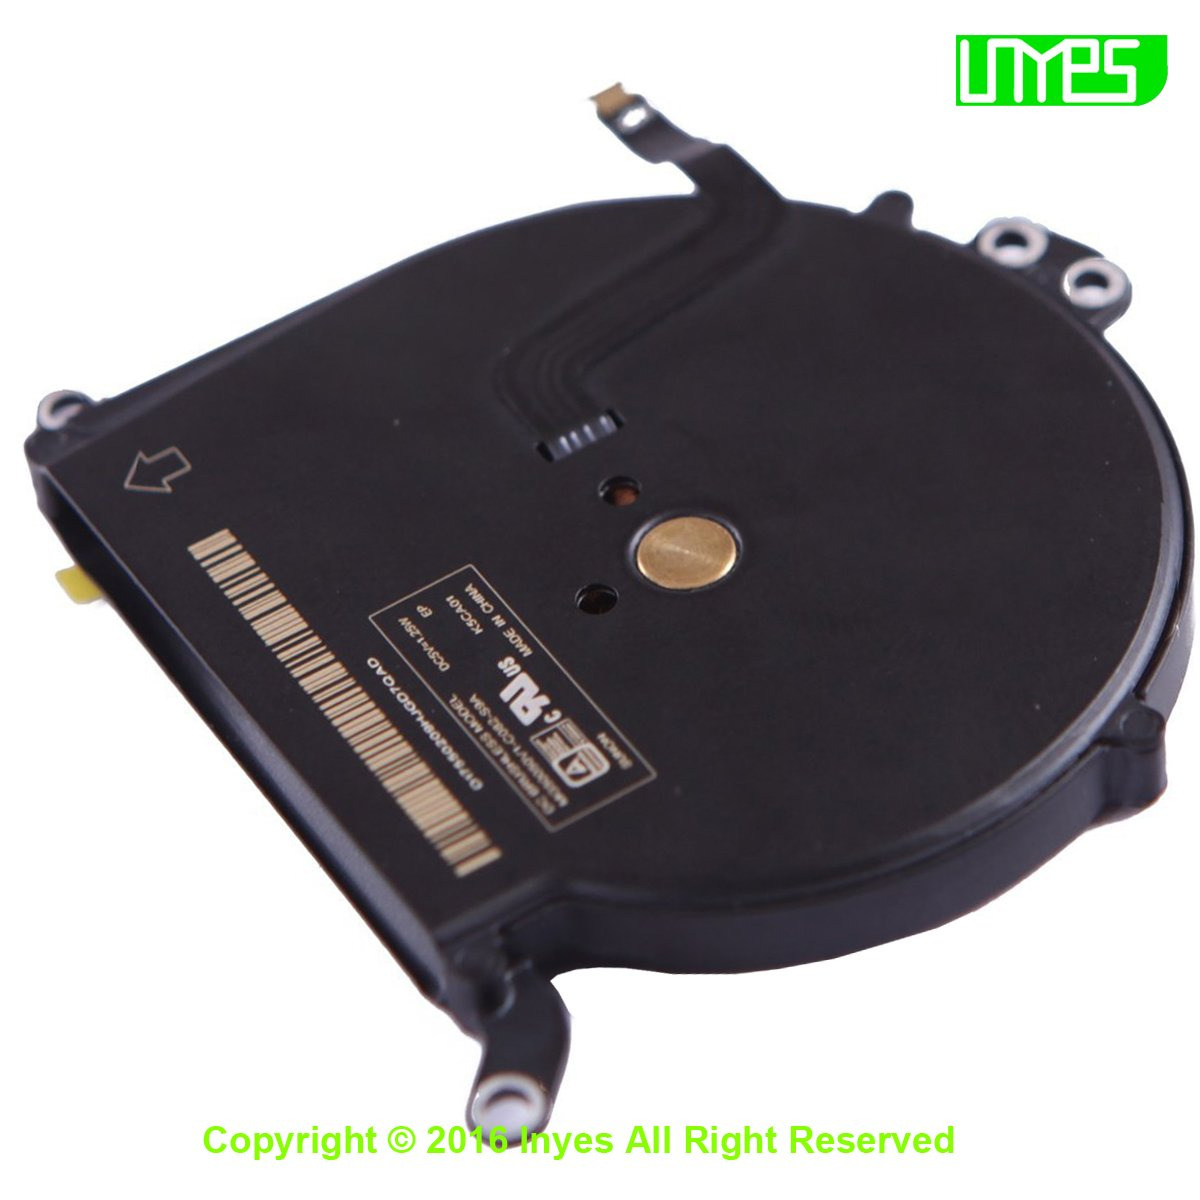 INYES CPU Cooling Fan for Macbook Air 13 A1369 Fan 2010 2011 A1466 2012 2013 2014 Year